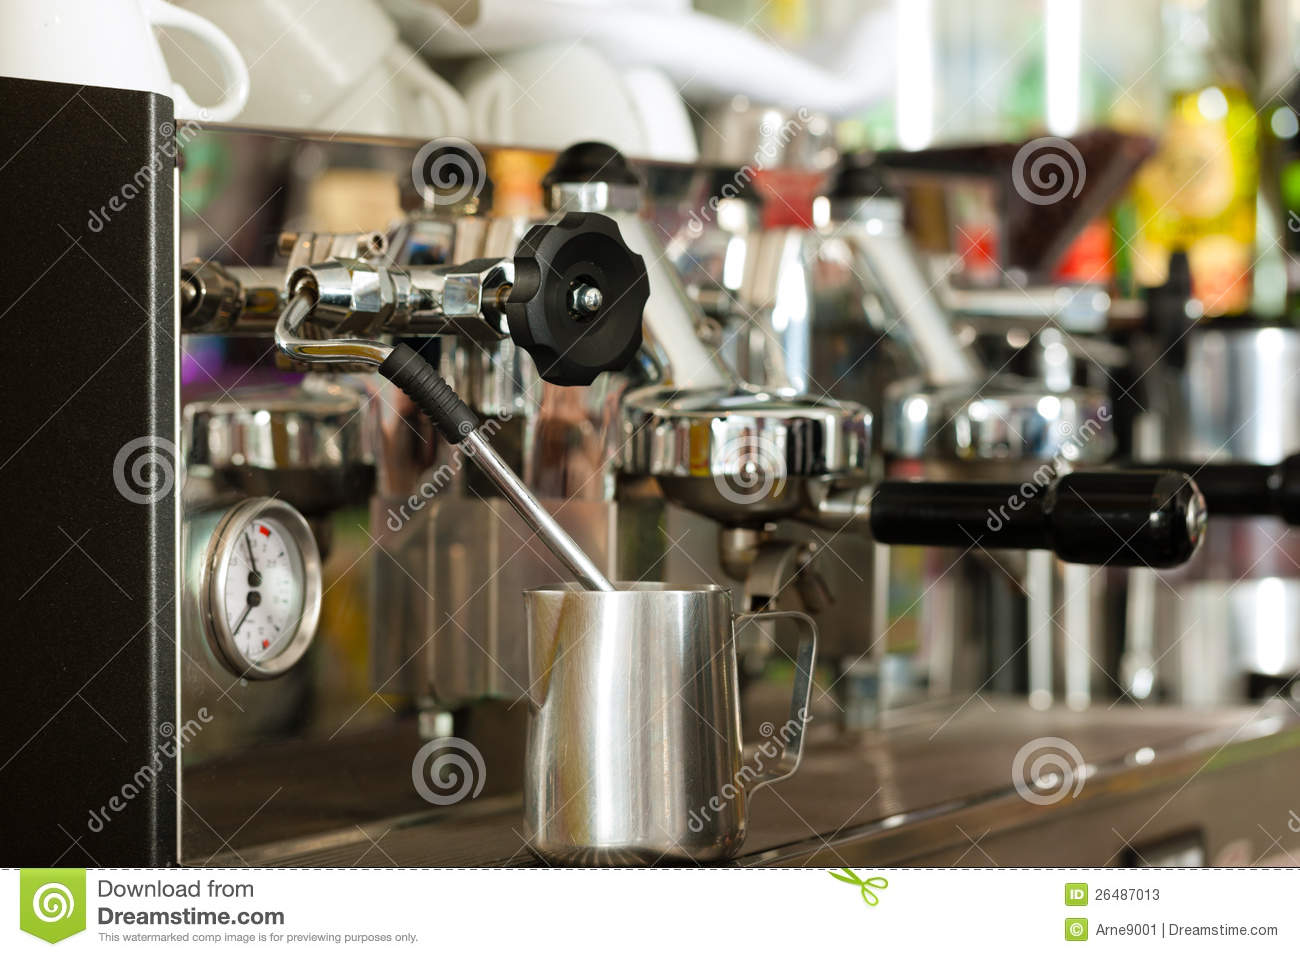 coffee machine in cafe or bar stock photos image 26487013. Black Bedroom Furniture Sets. Home Design Ideas